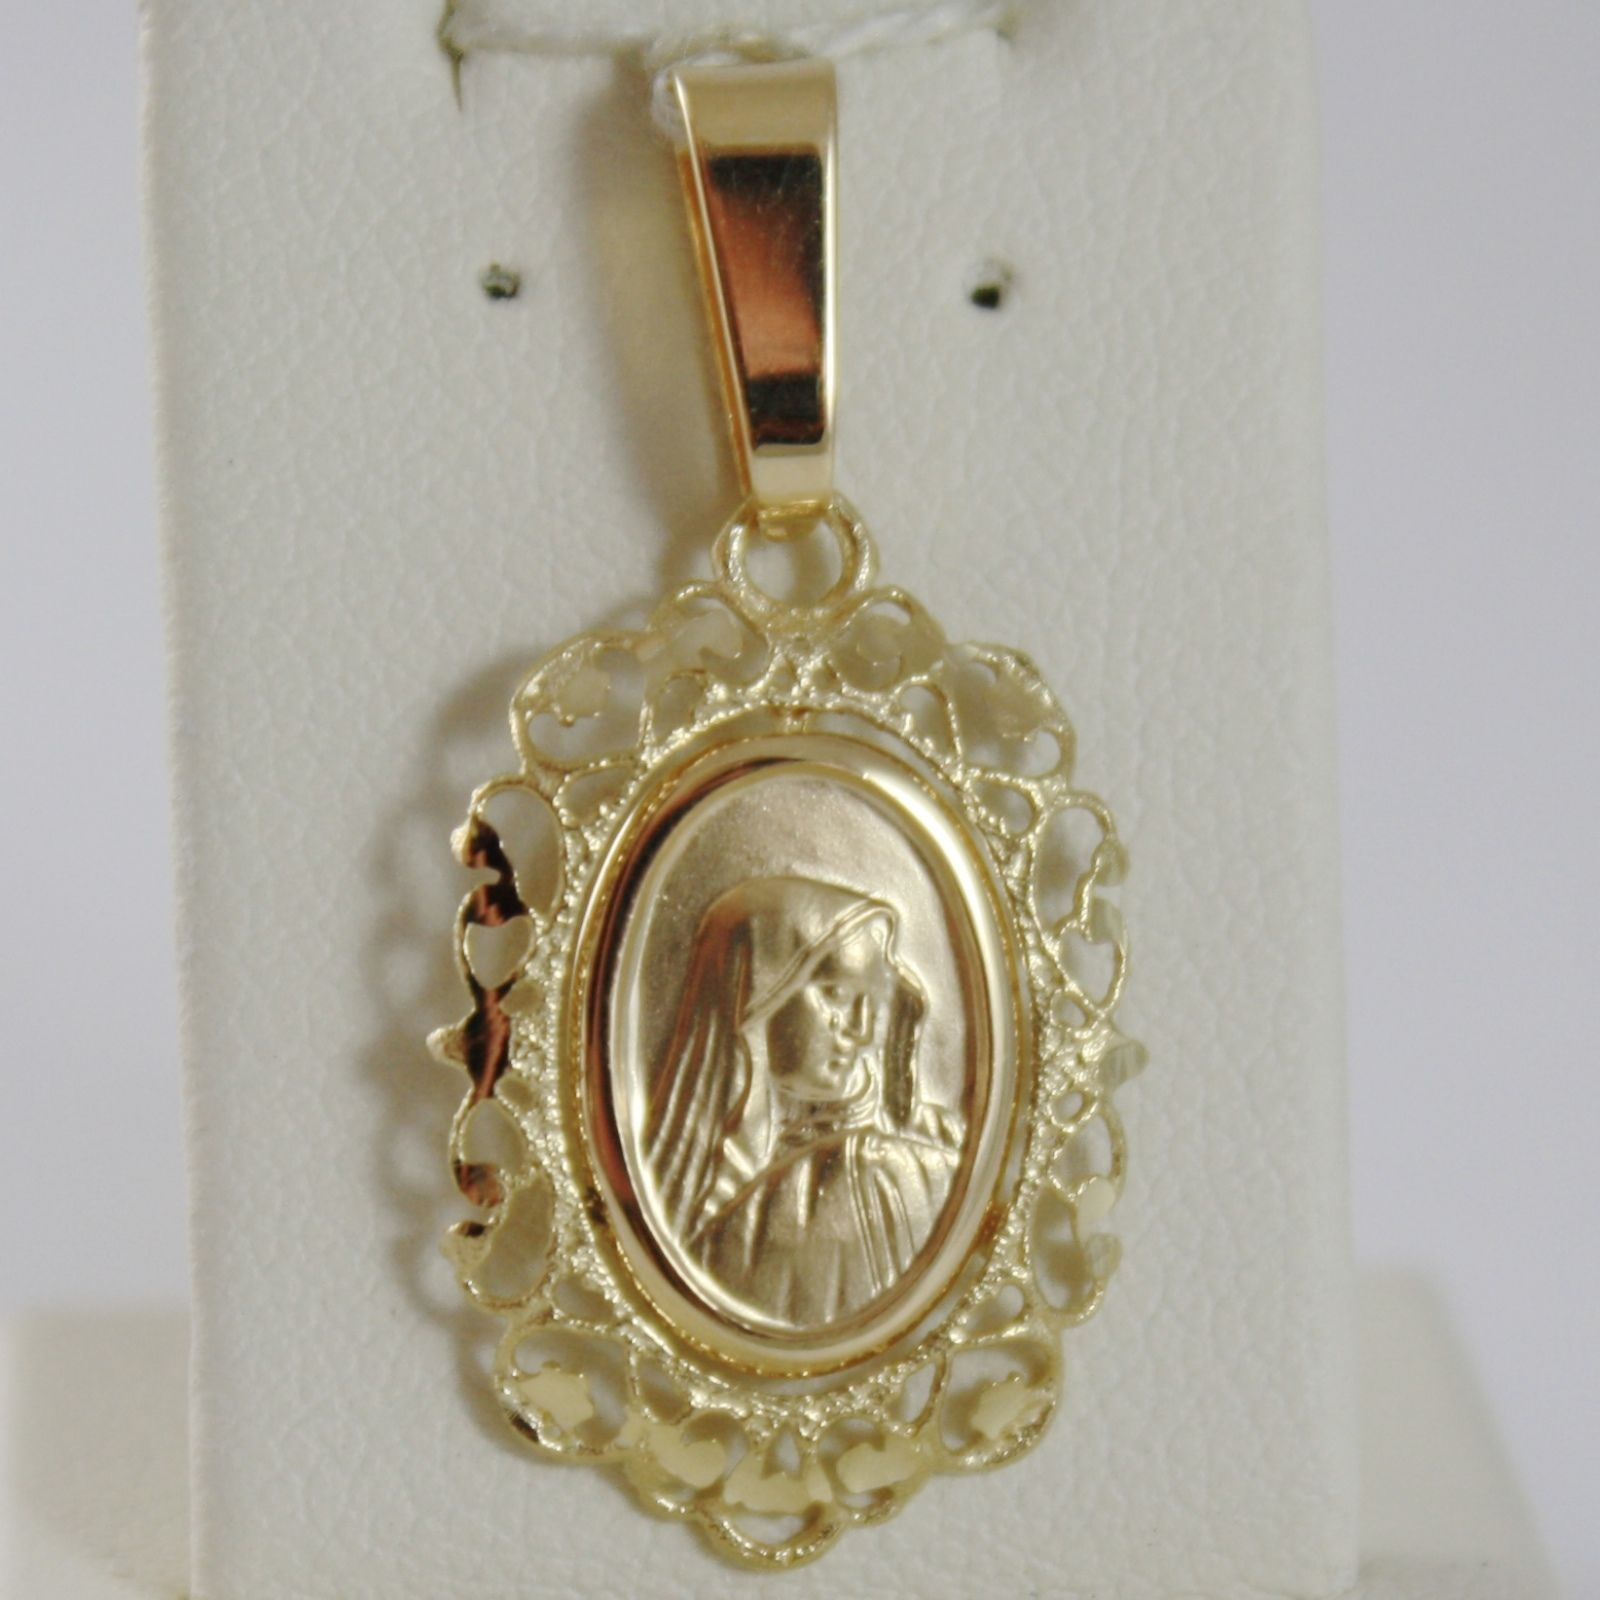 SOLID 18K YELLOW GOLD VIRGIN MARY MADONNA MEDAL WITH WORKED FRAME MADE IN ITALY